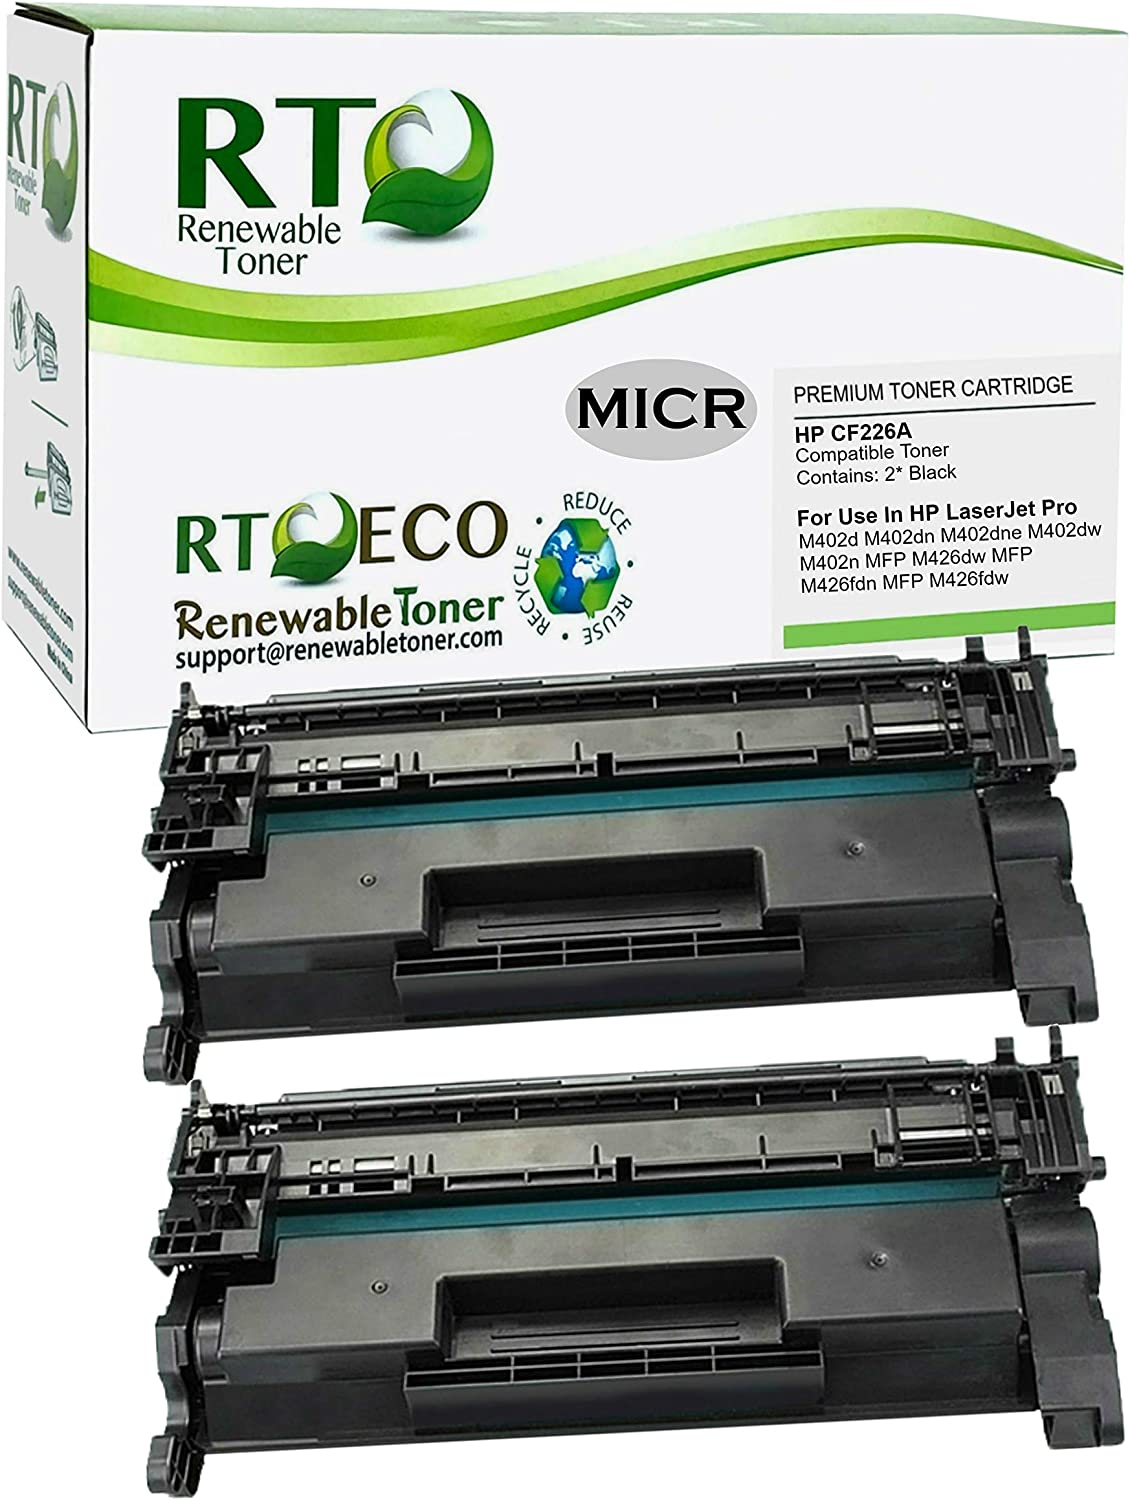 Renewable Toner Compatible MICR Toner Cartridge Replacement for HP CF226A 26A Laserjet Pro M402 M426 MFP (2-Pack)